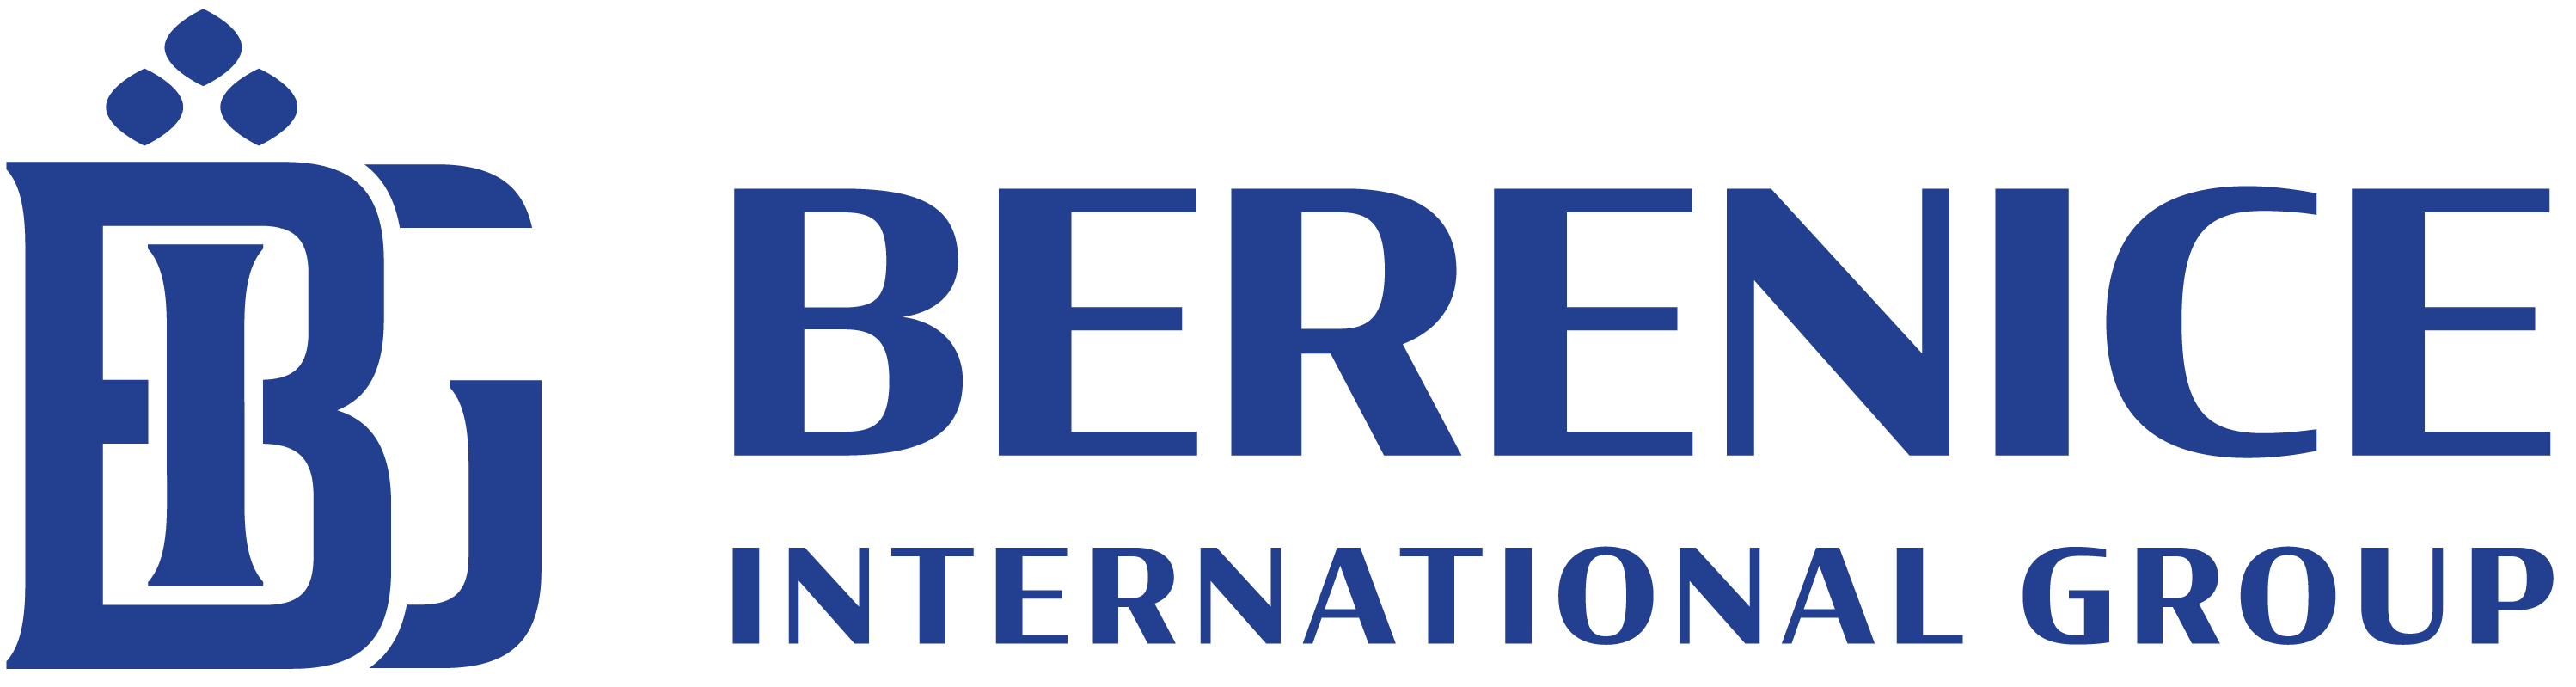 Berenice International Group